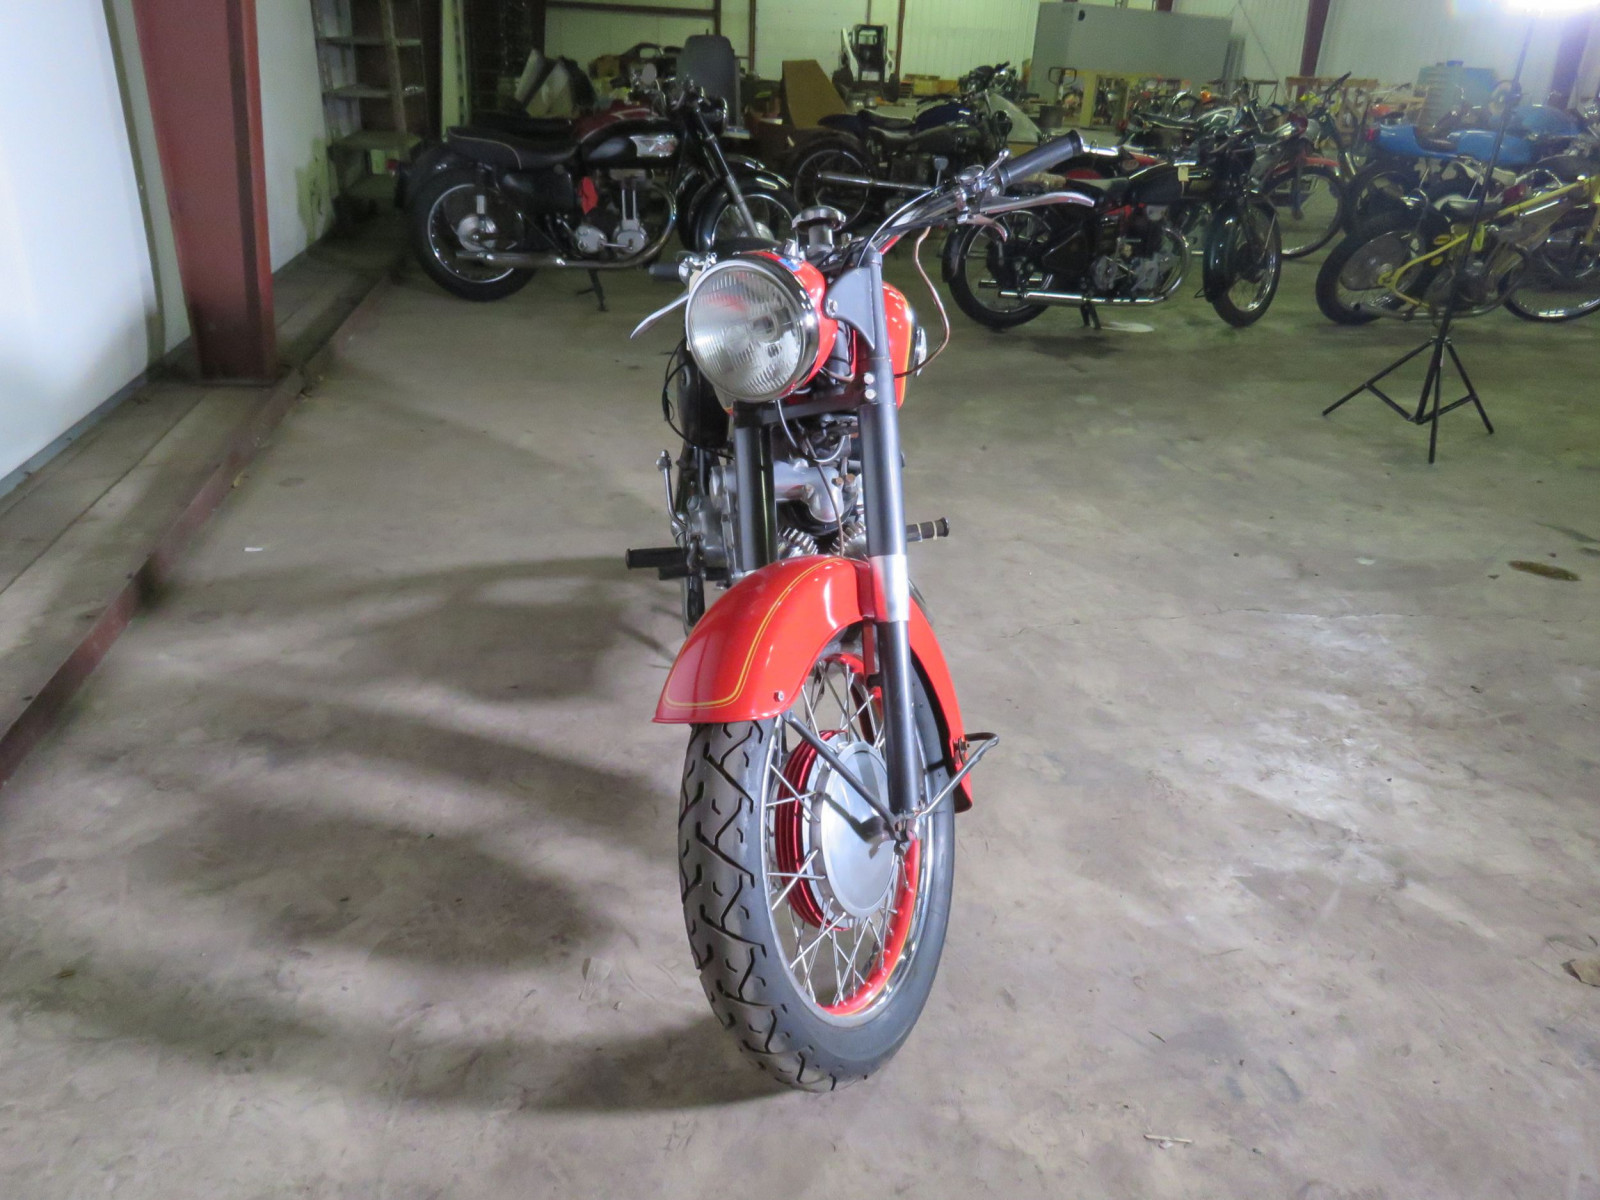 1965 Panther Model 120 Motorcycle - Image 2